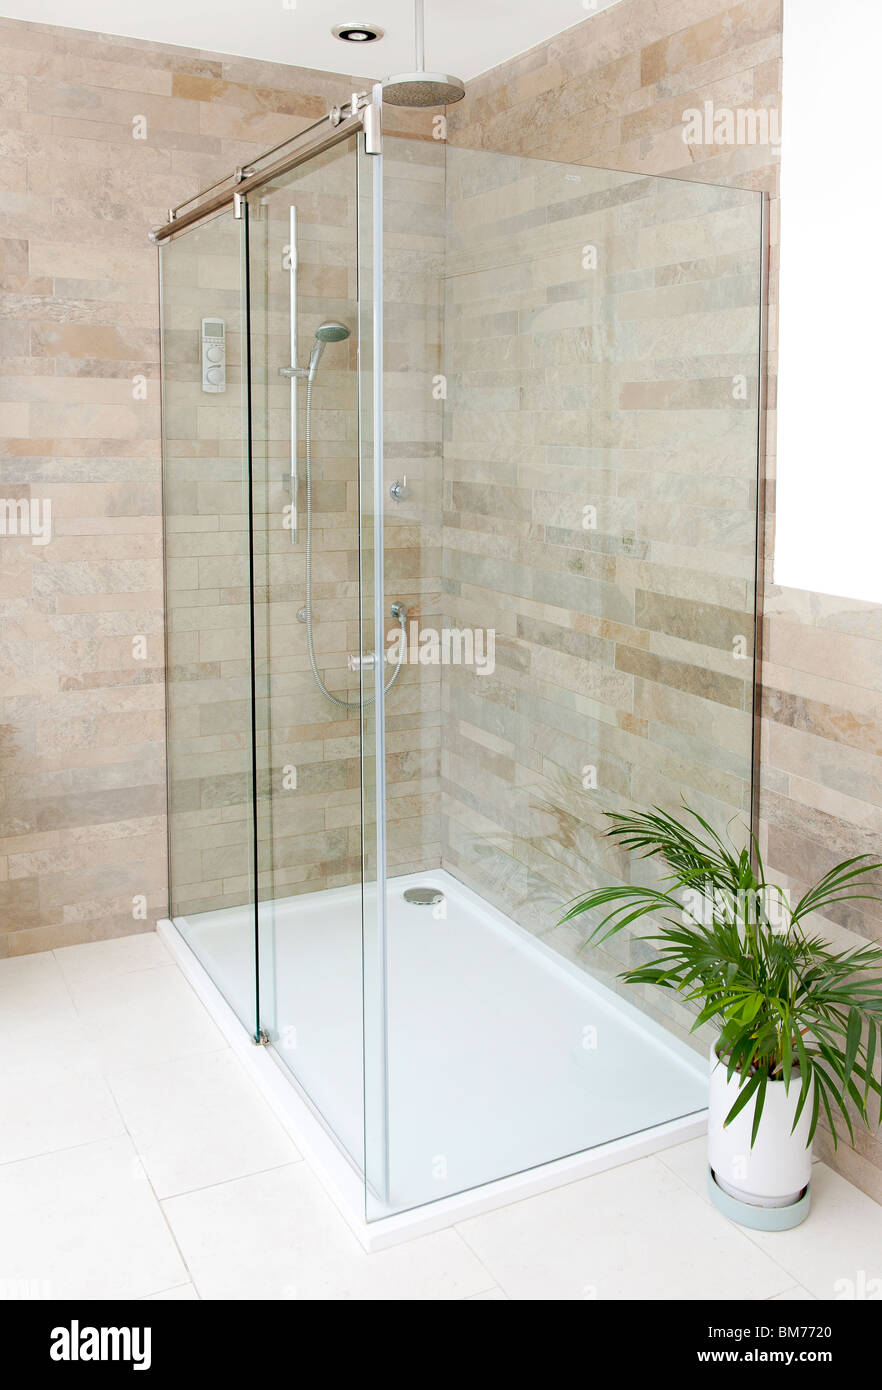 Glass Wall Shower Area In Luxury Bathroom